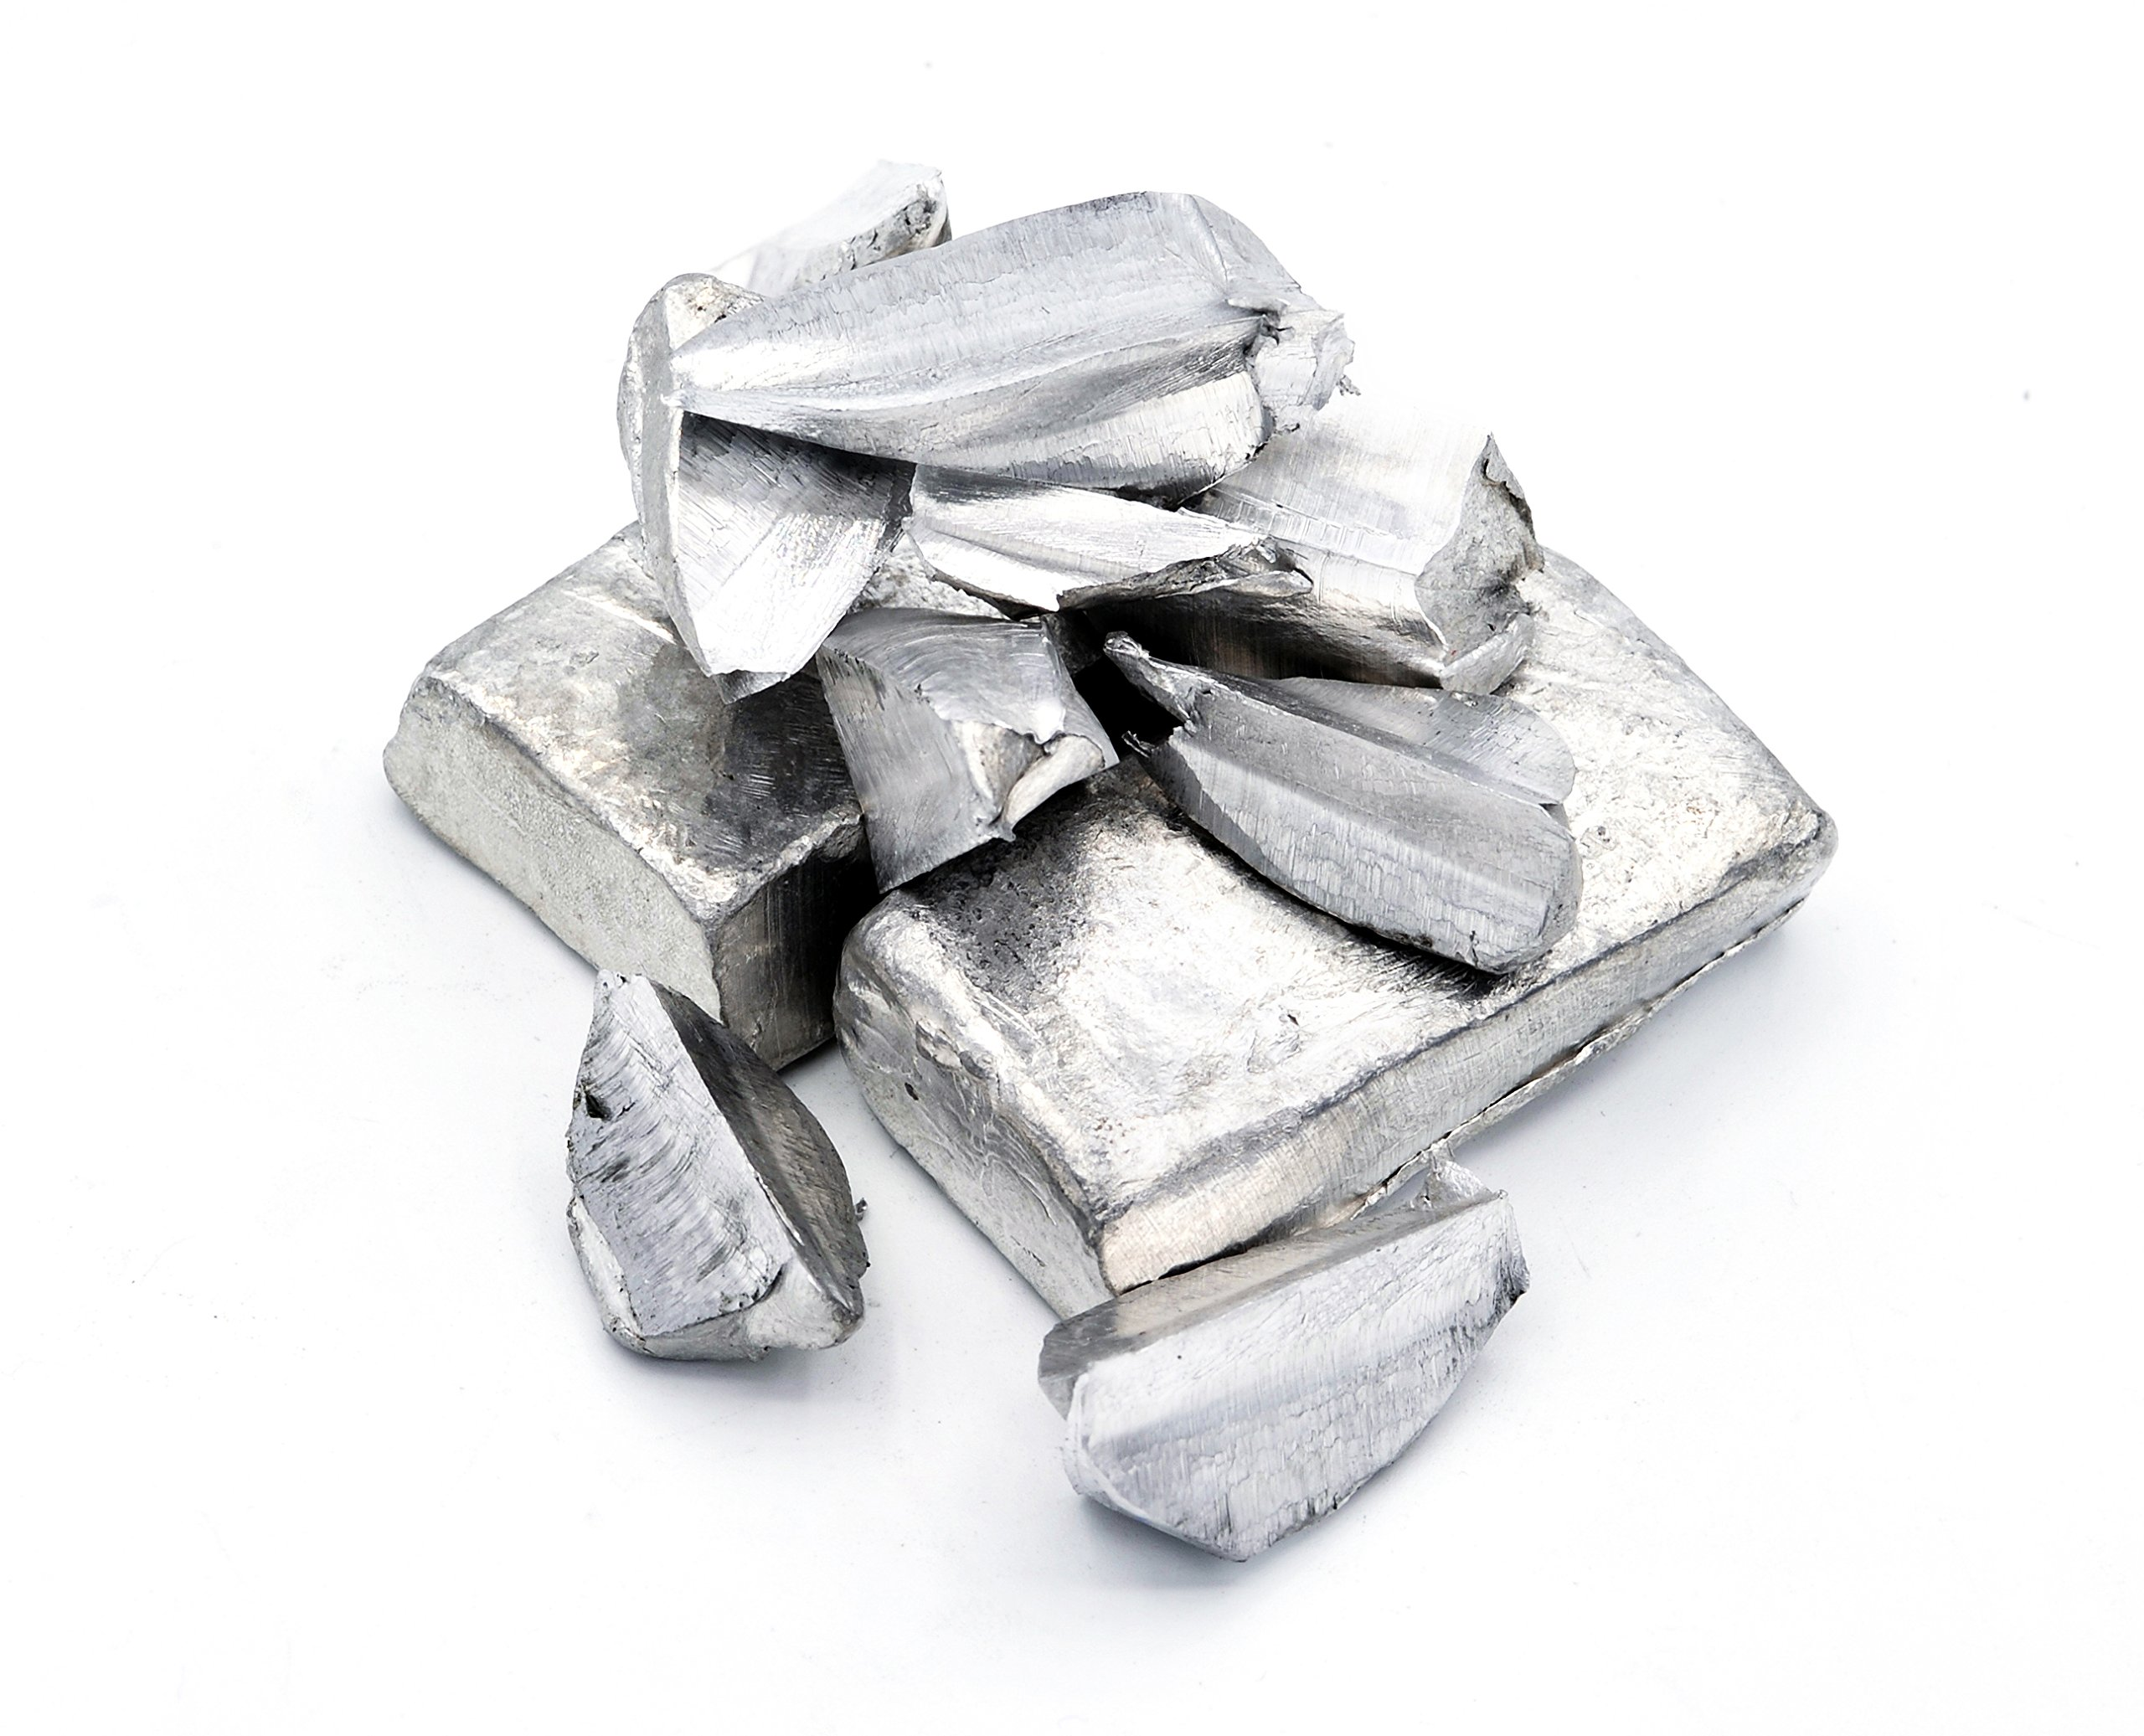 Indium Metal 99.995% Pure 20 Grams Get it in Five Days or Full Refund